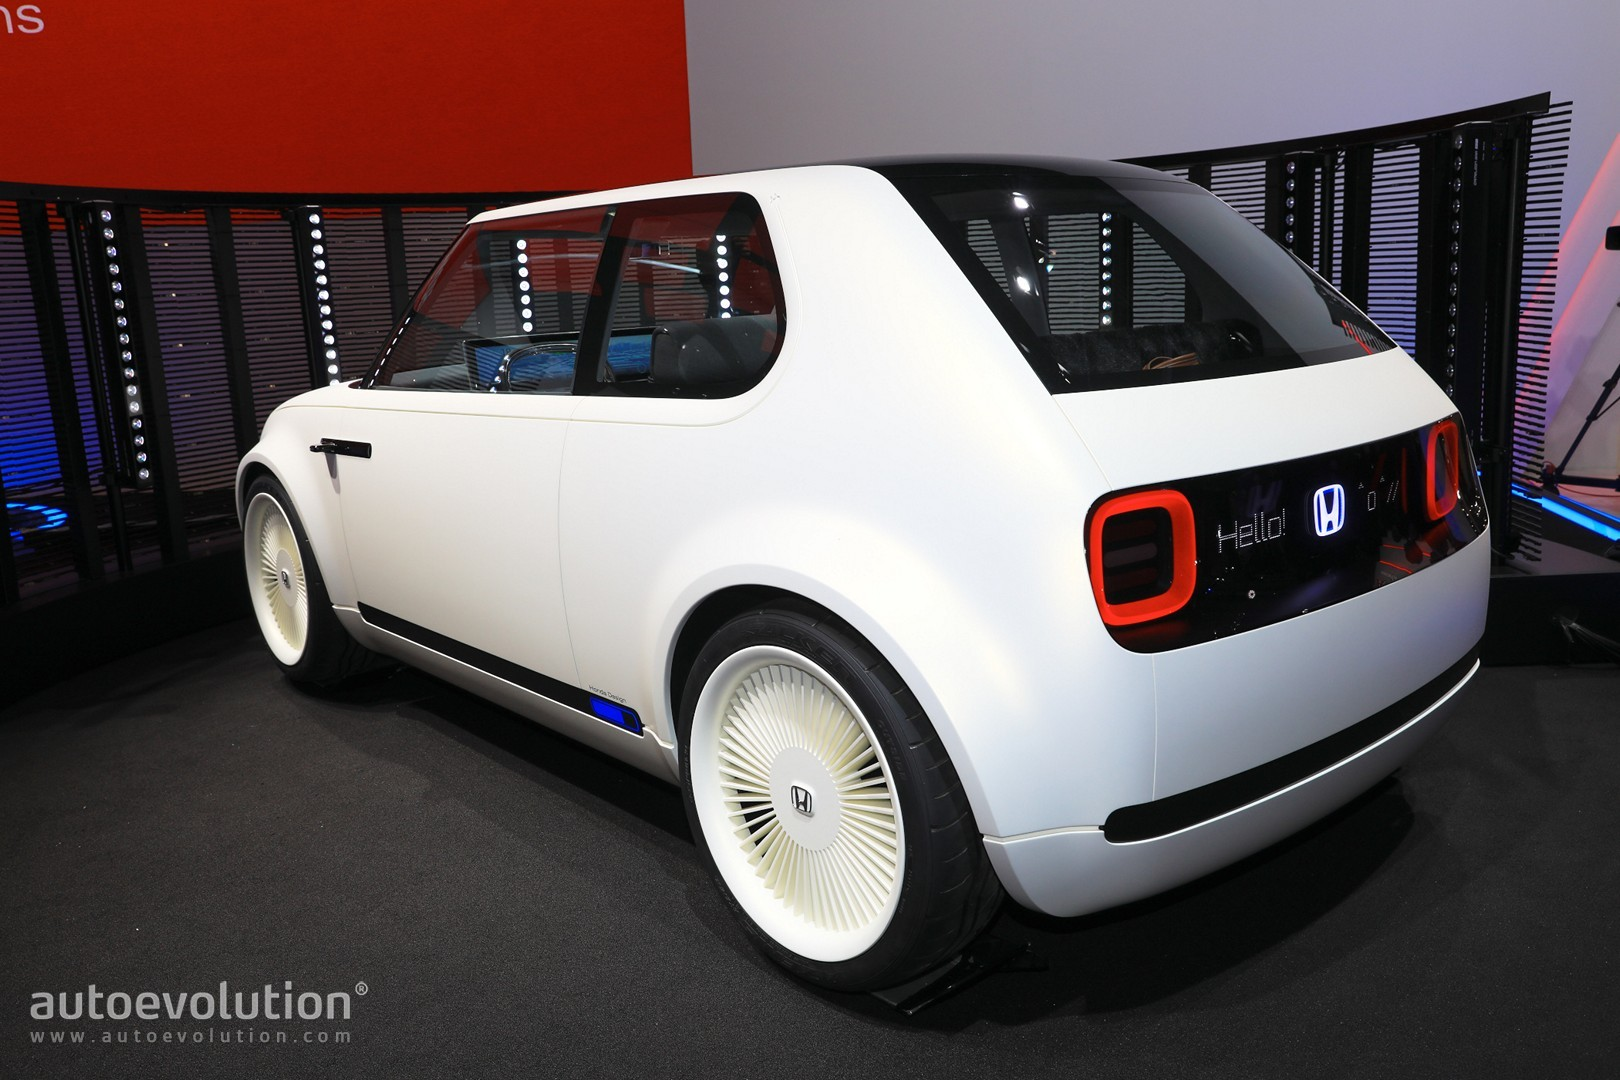 Honda Shows Electric Mk1 Golf You Never Knew You Wanted - autoevolution